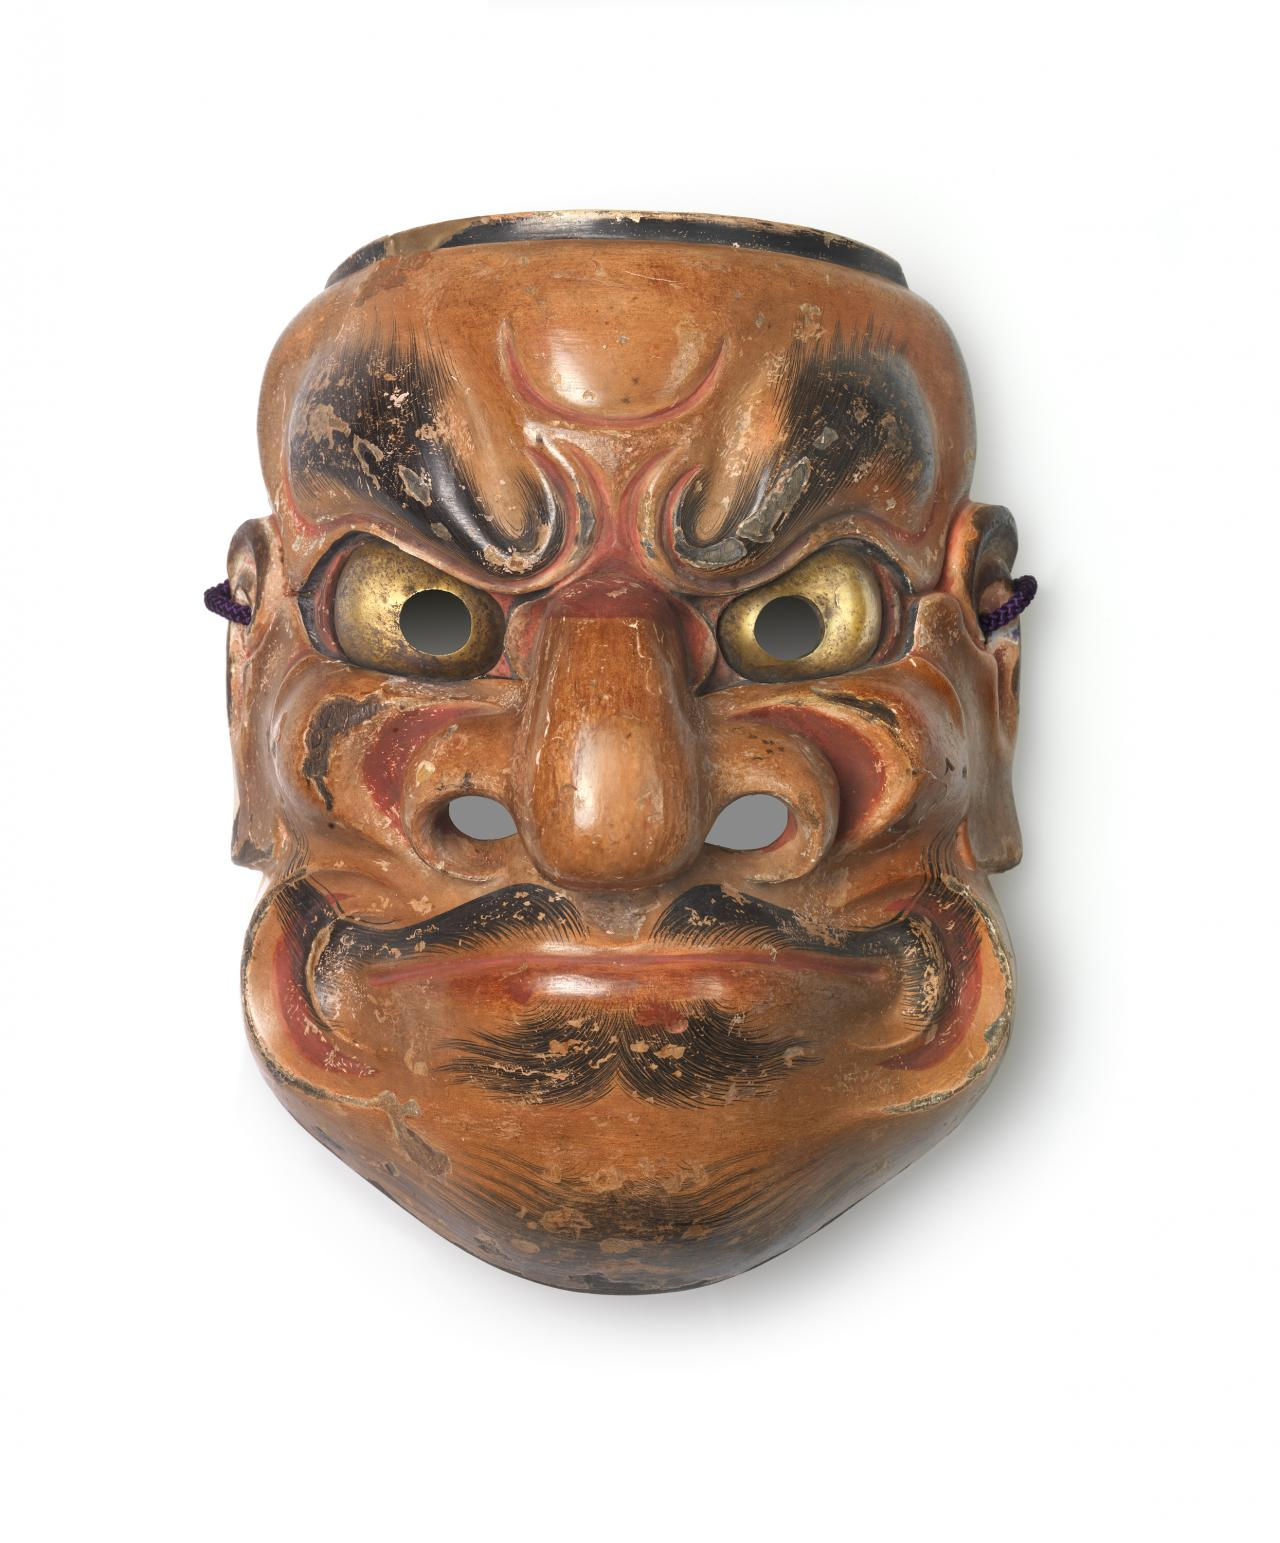 DEME Hidemitsu (attributed to) Noh mask, Ōbeshimi (17th century)